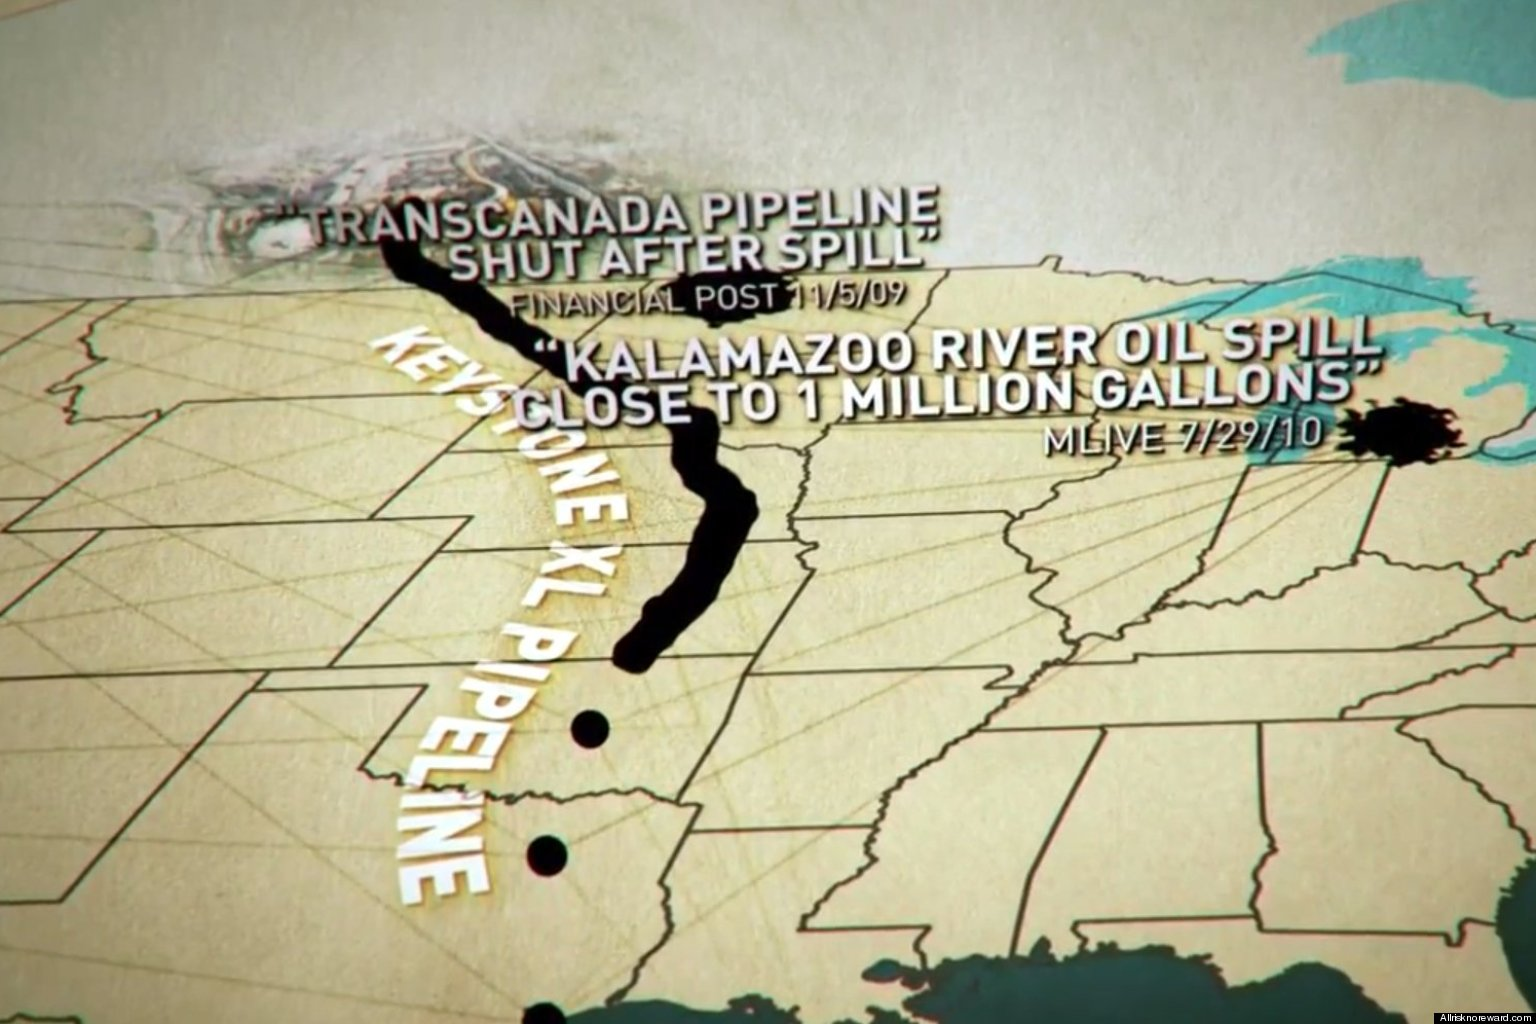 WATCH: Keystone XL War Heats Up